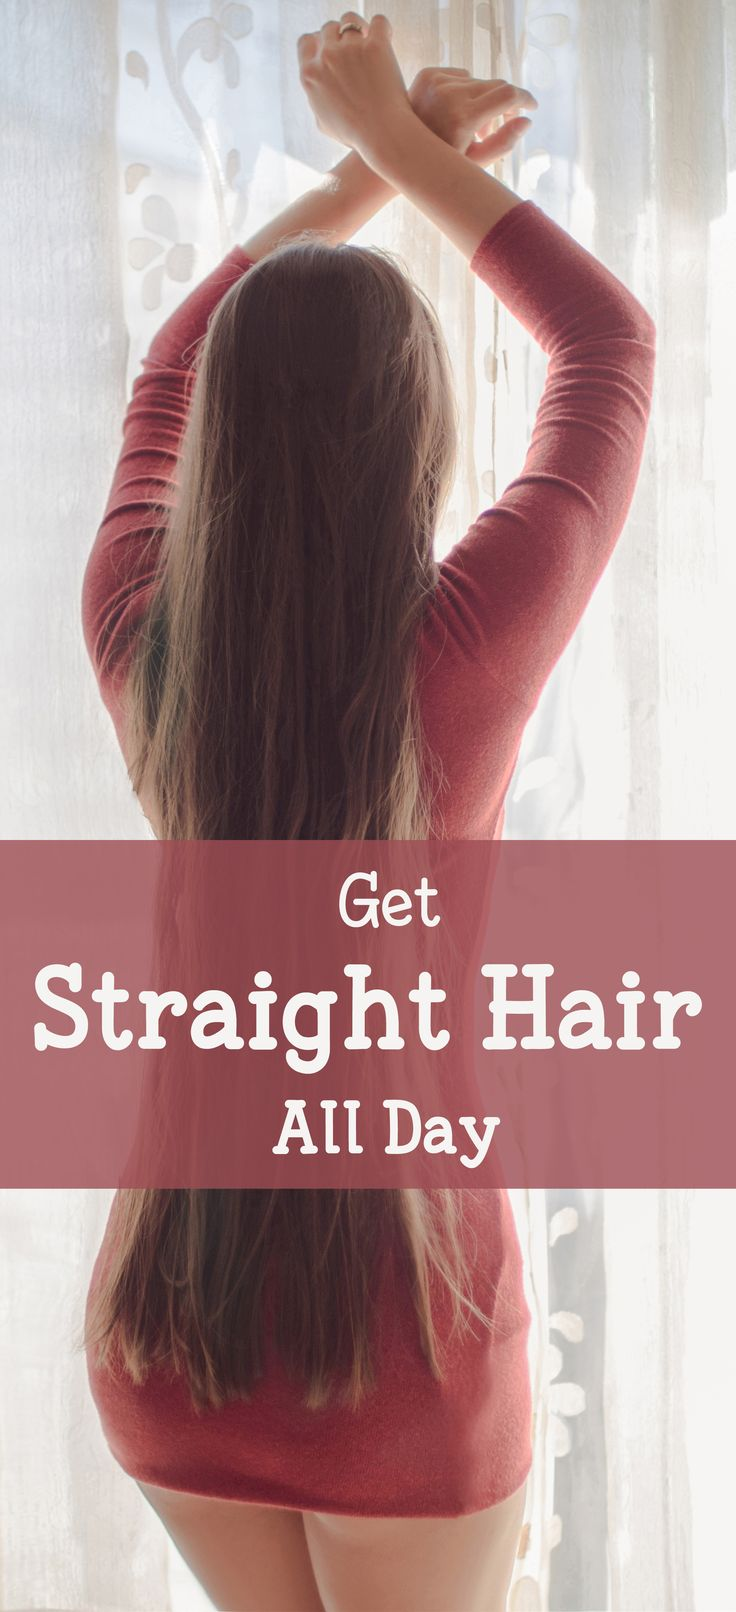 How To Make My Hair Straight And Silky Naturally